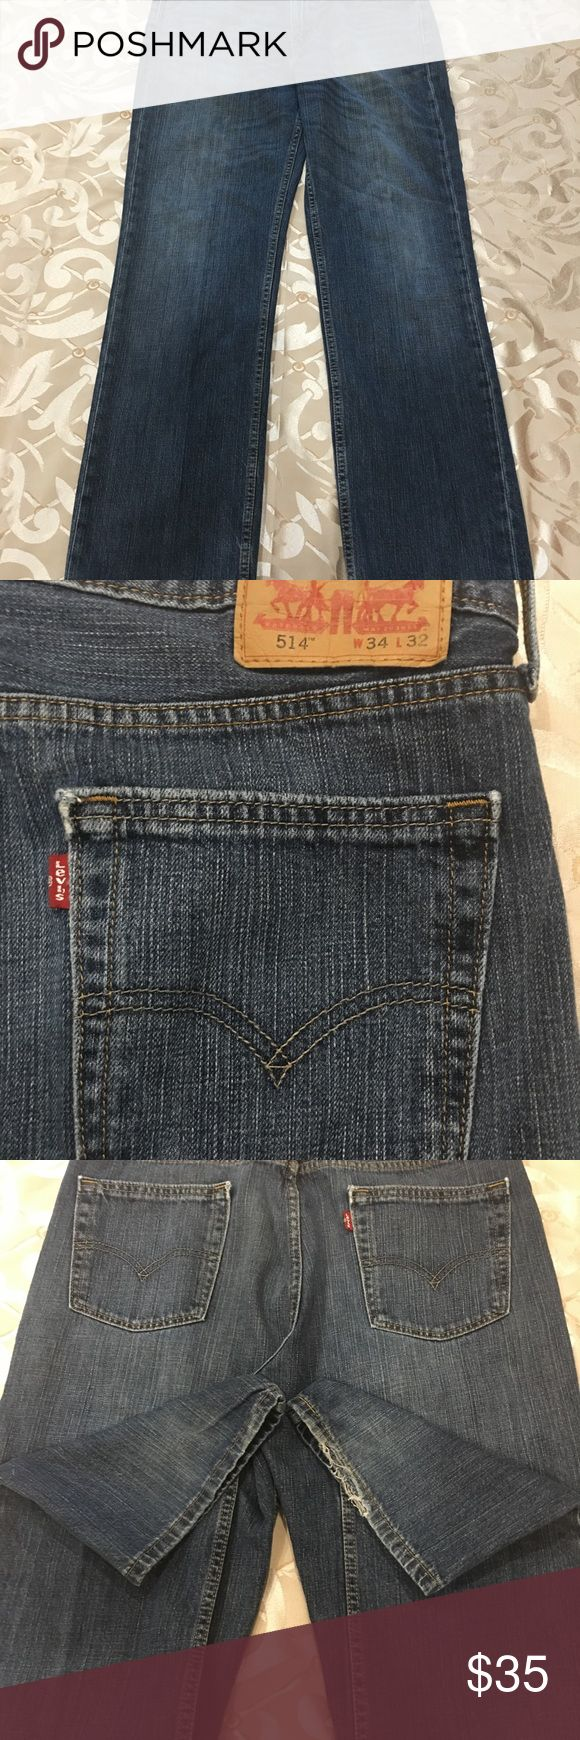 MENS LEVIS JEANS Men's Levi's jeans light wash size 34/32. Gently used, good condition. Smoke and pet free home. Levi's Jeans Straight